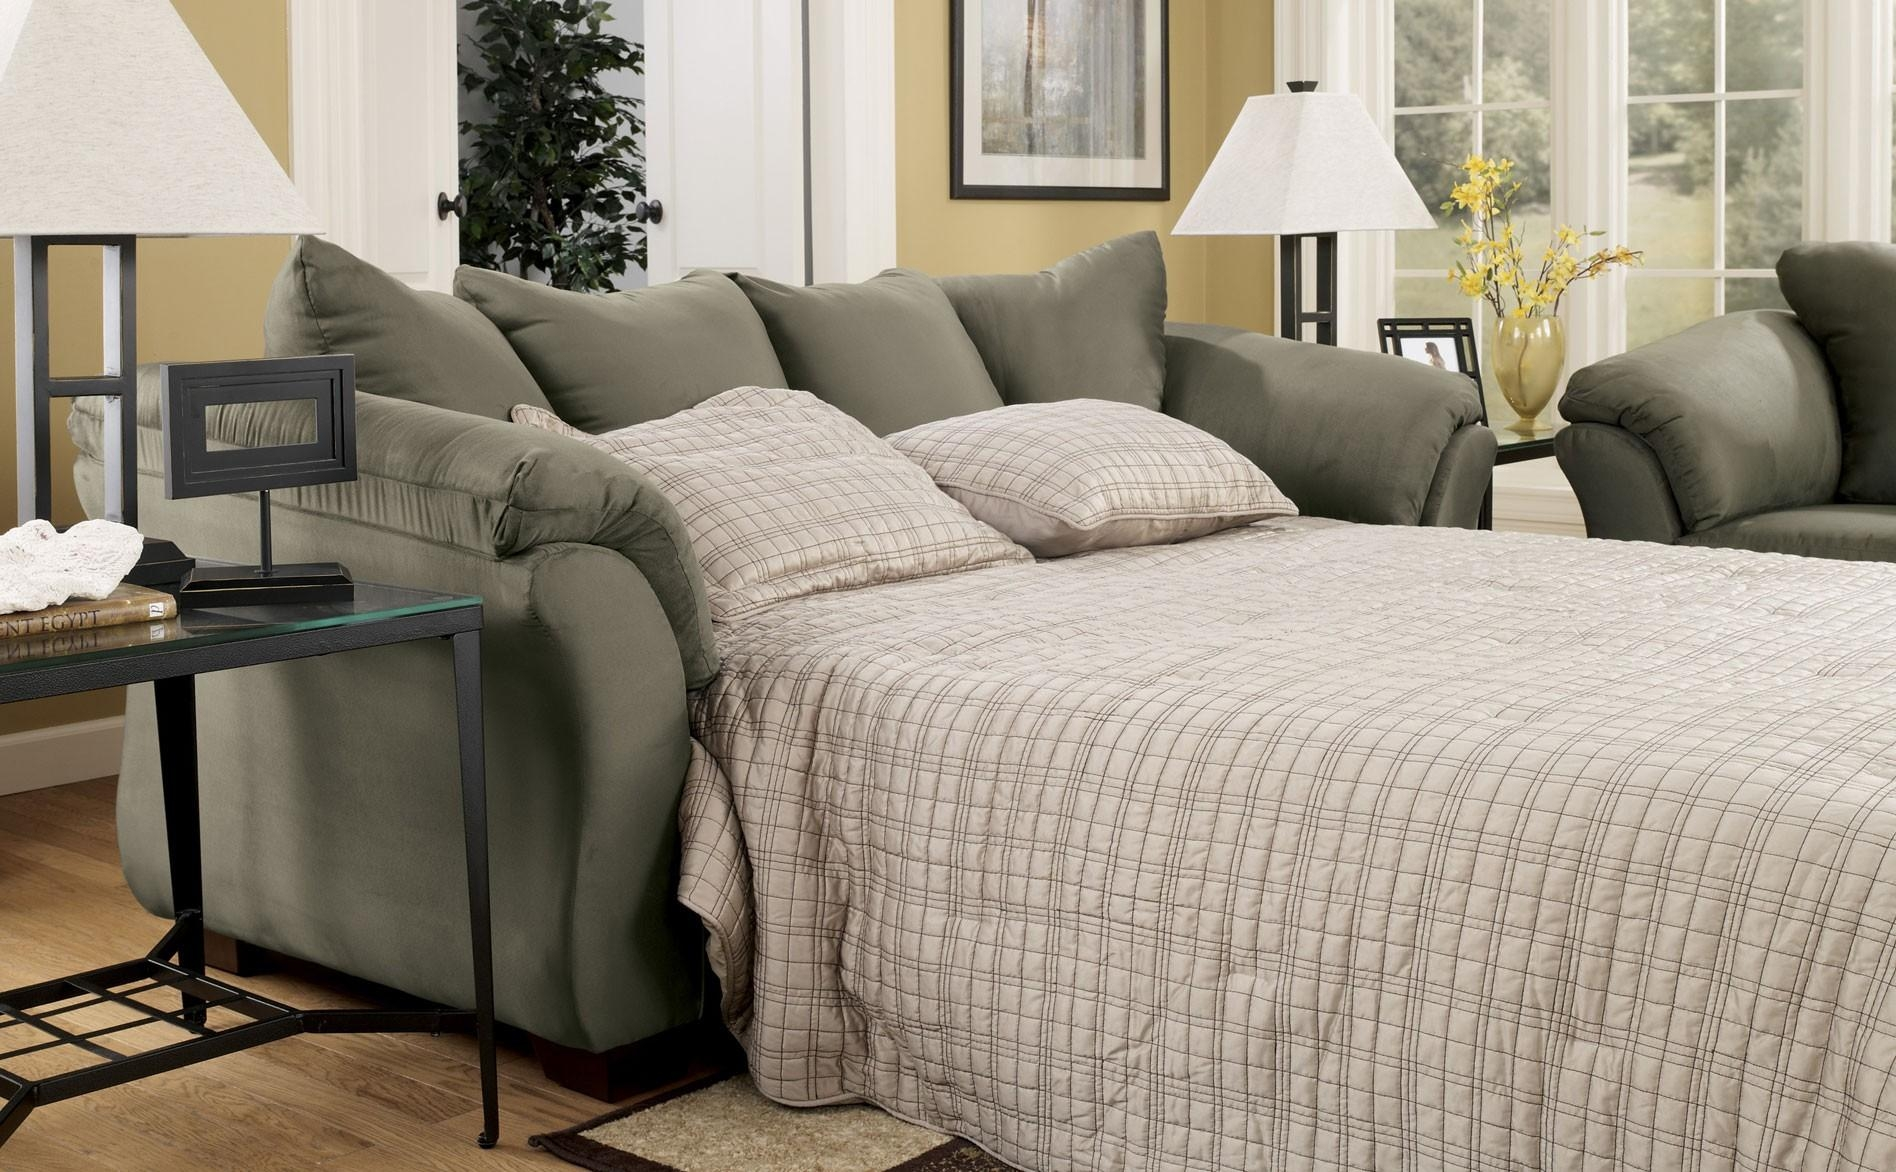 Furniture: Using Comfy Simmons Sleeper Sofa For Home Furniture With Simmons Sleeper Sofas (Image 8 of 20)